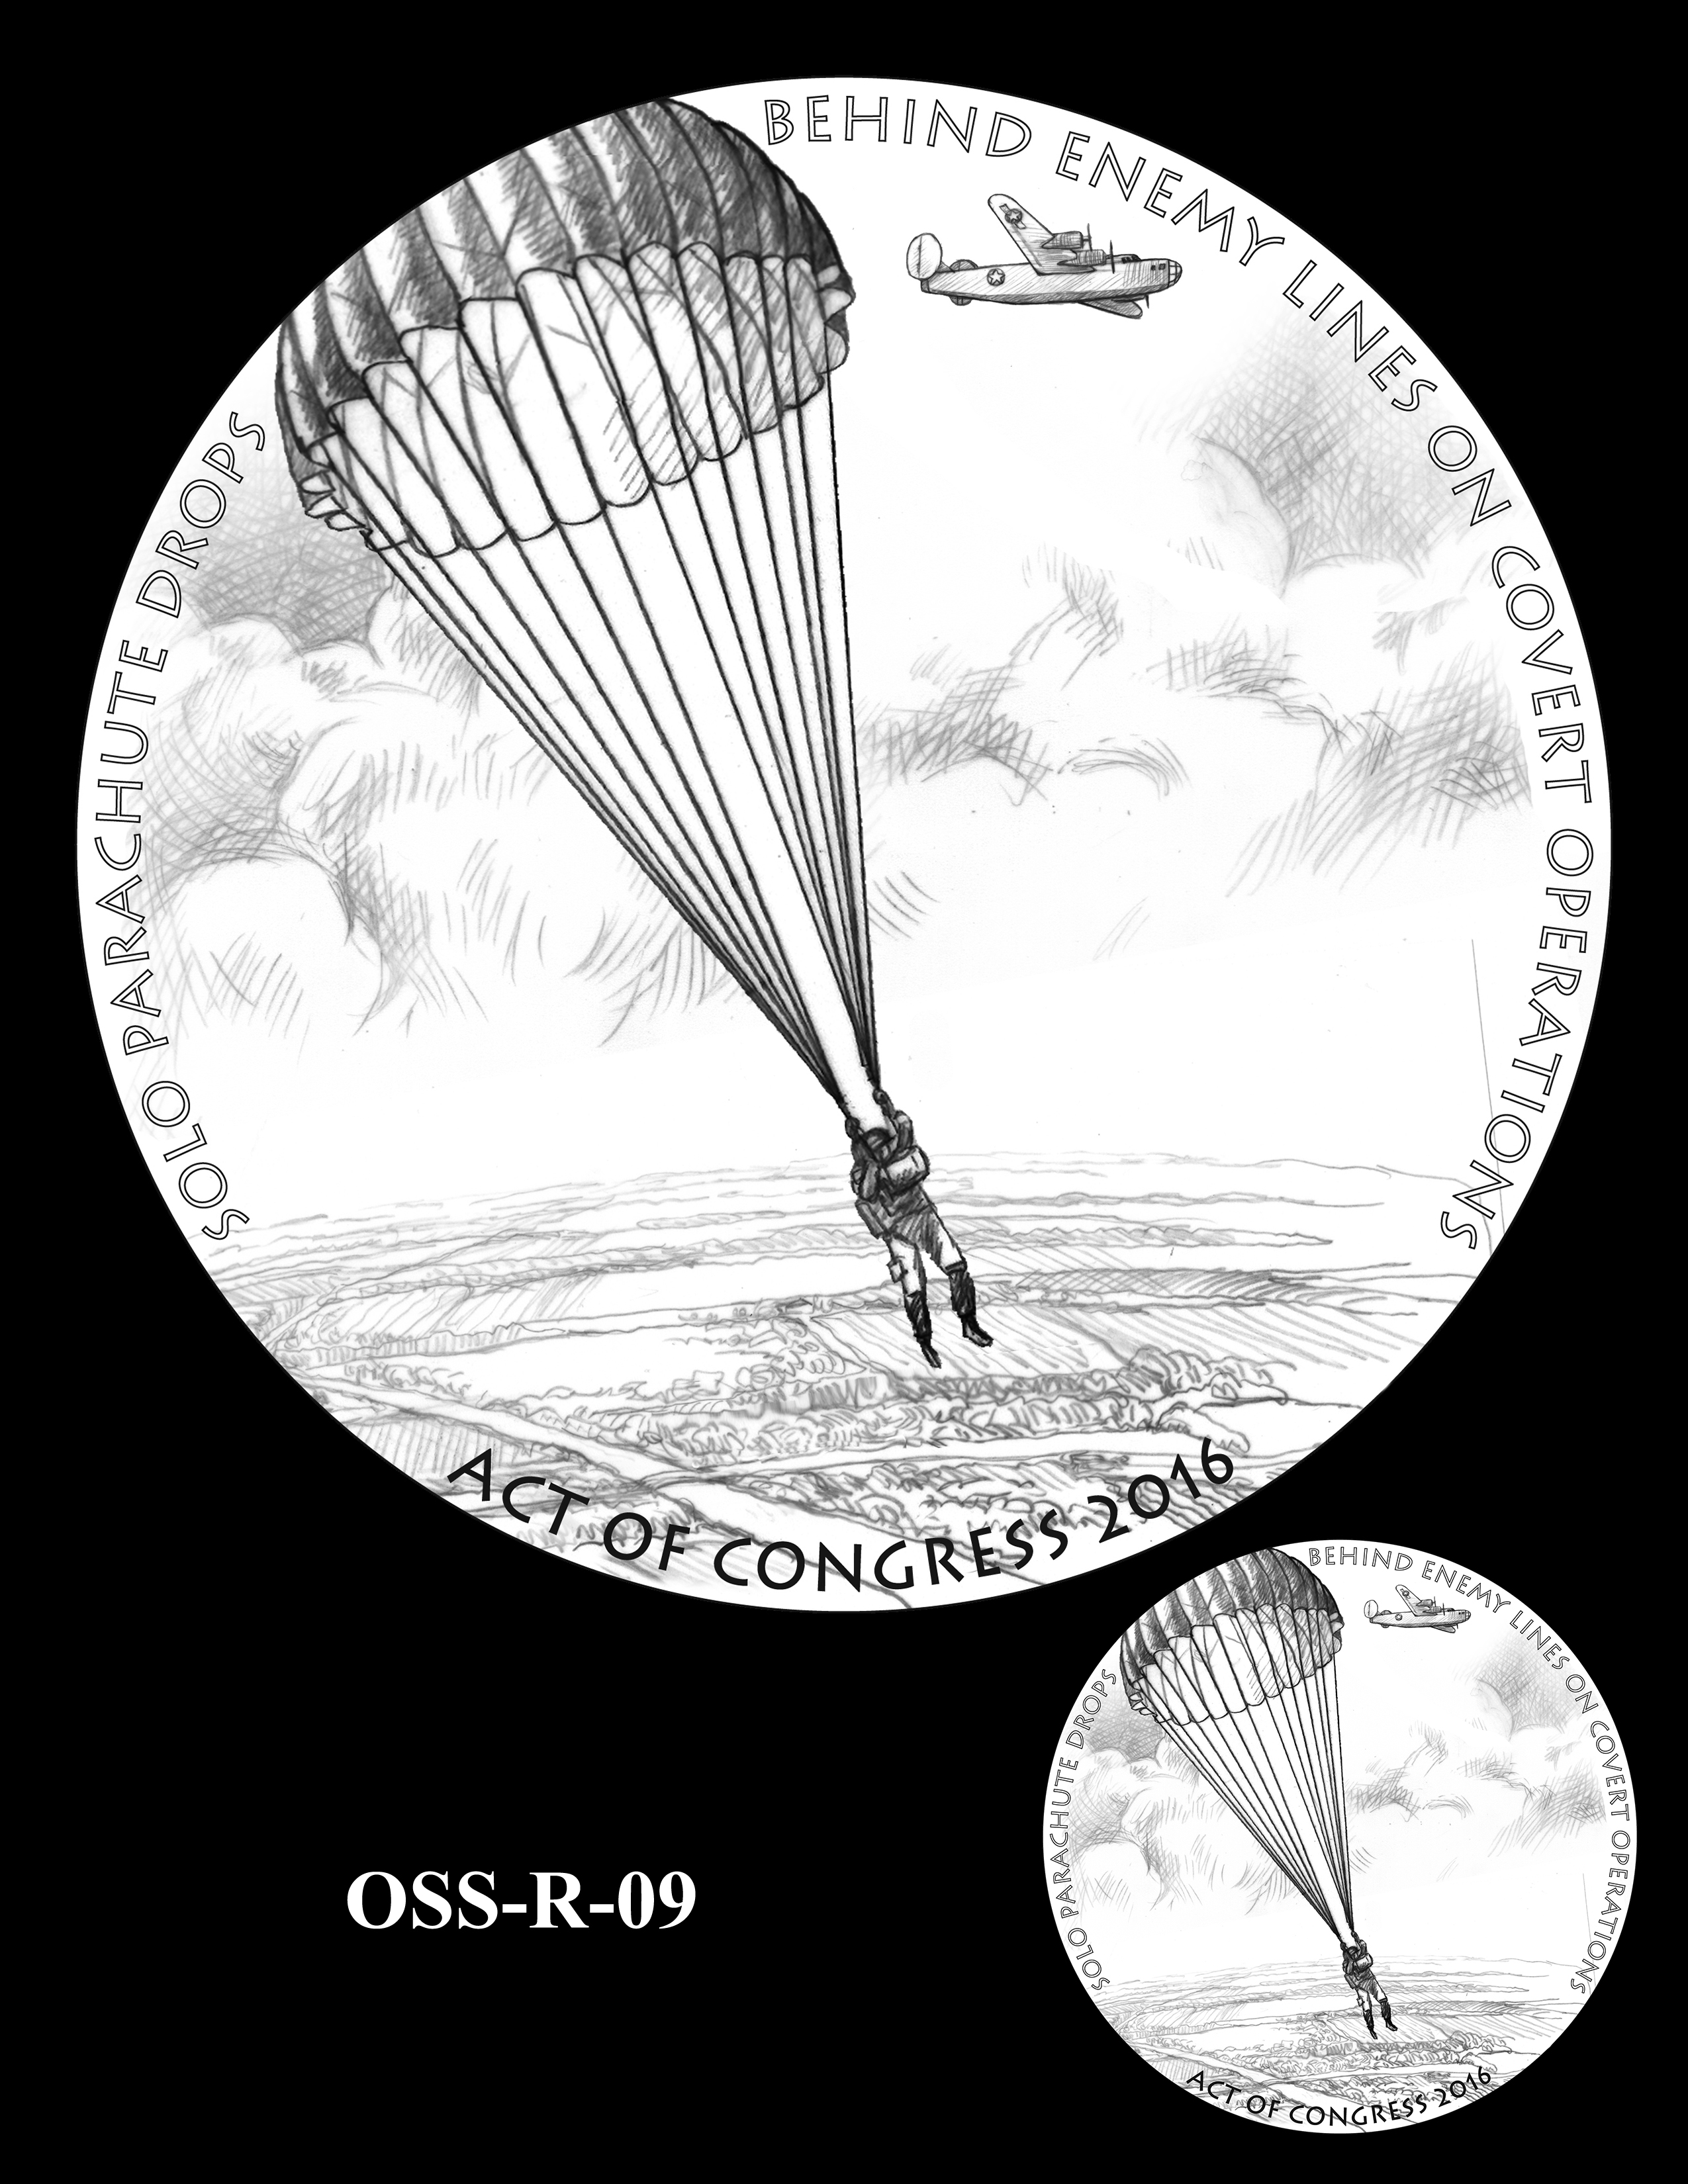 OSS-R-09 -- Office of Strategic Services Congressional Gold Medal